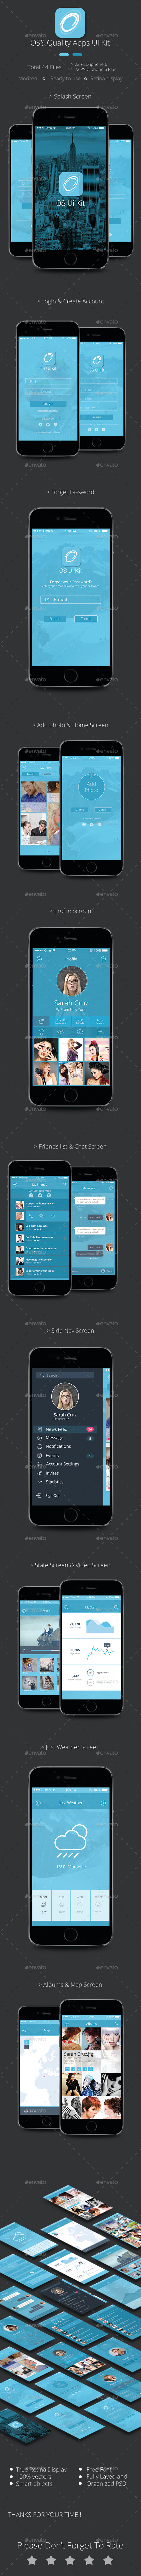 Phone 6 OS 8 Style App UI - User Interfaces Web Elements